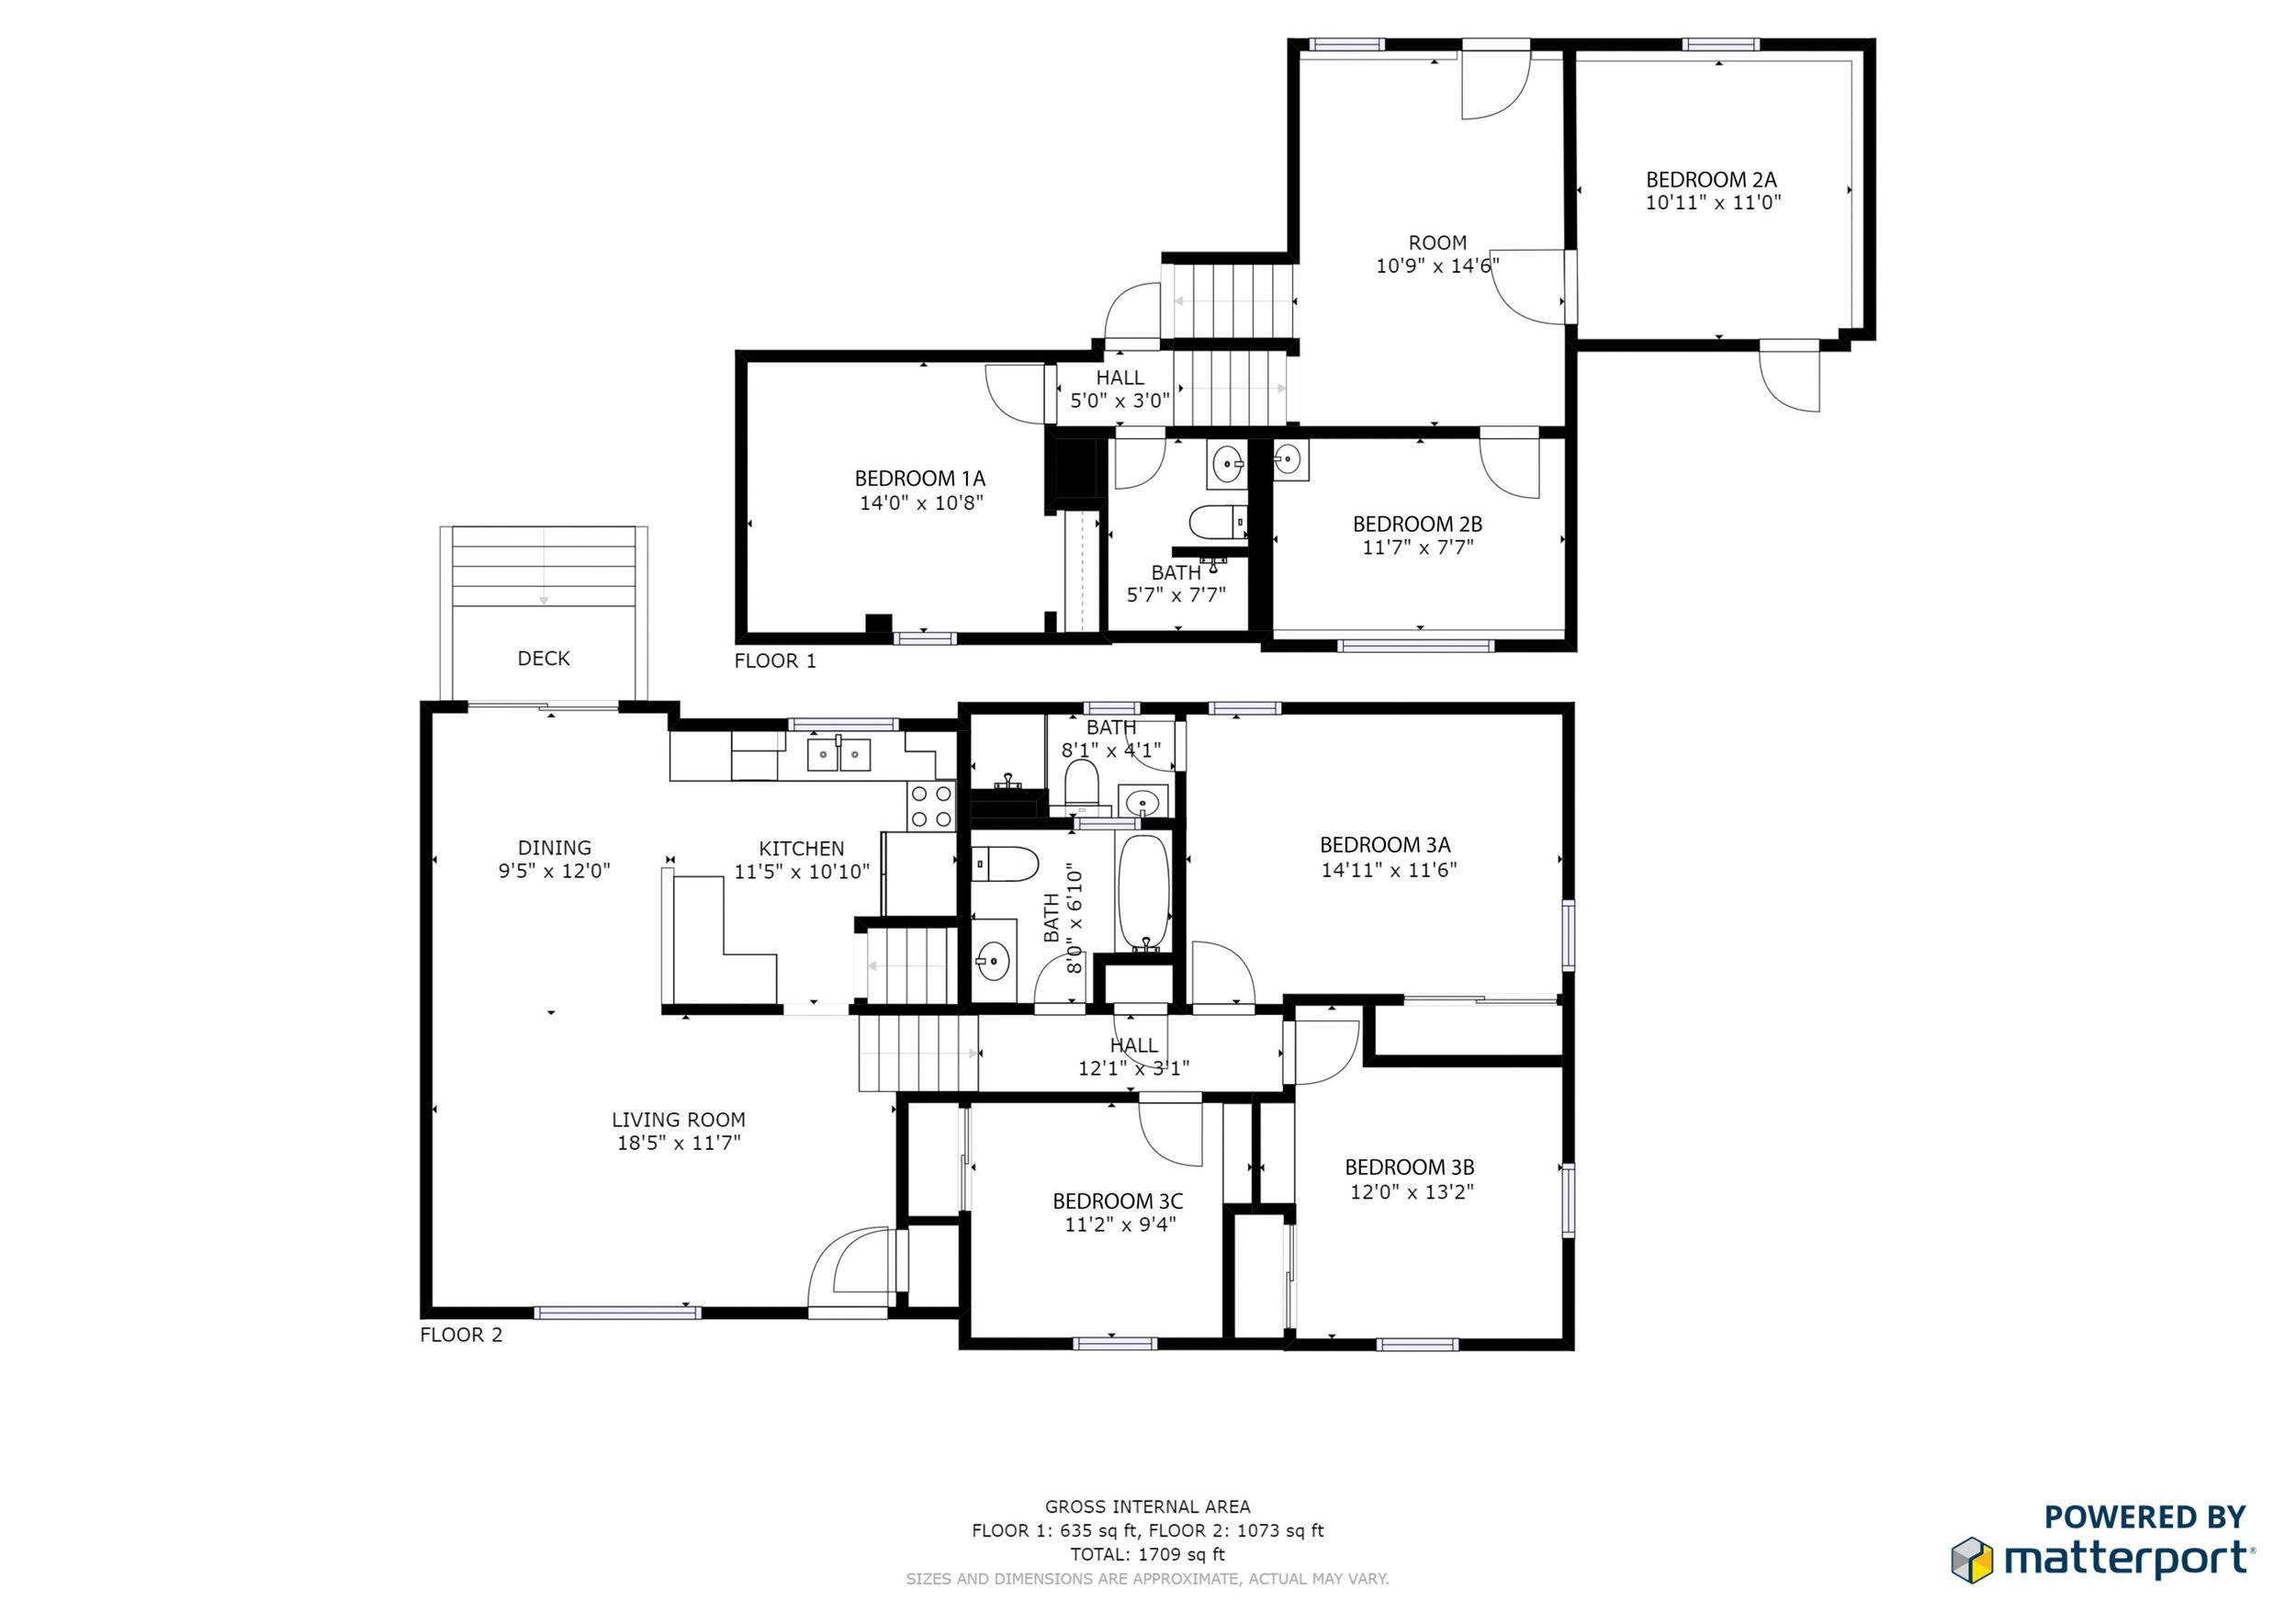 Floor Plan With Room Labels.jpg